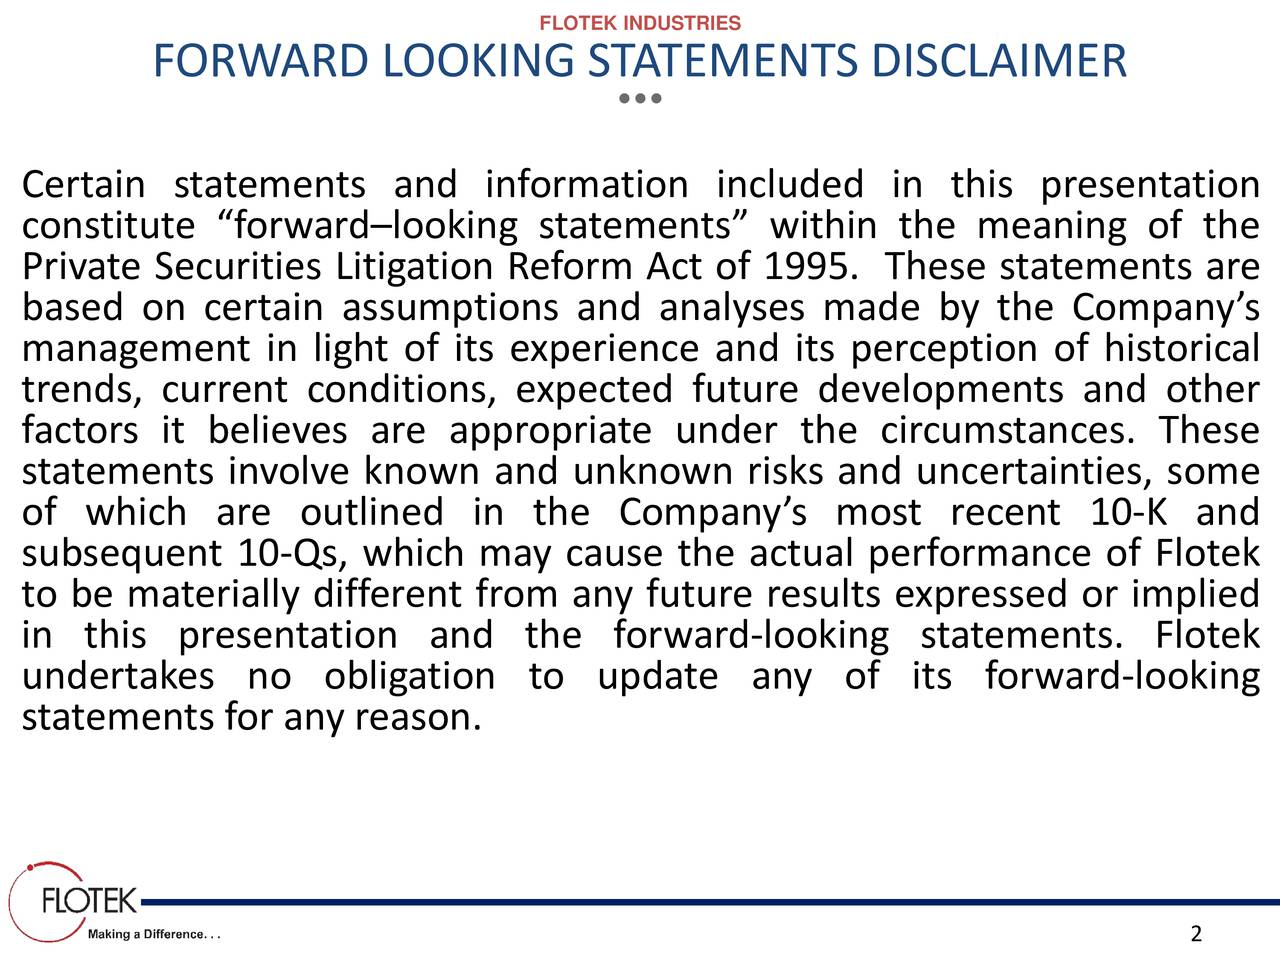 FORWARD LOOKING STATEMENTS DISCLAIMER Certain statements and information included in this presentation constitute forwardlooking statements within the meaning of the Private Securities Litigation Reform Act of 1995. These statements are based on certain assumptions and analyses made by the Companys management in light of its experience and its perception of historical trends, current conditions, expected future developments and other factors it believes are appropriate under the circumstances. These statements involve known and unknown risks and uncertainties, some of which are outlined in the Companys most recent 10-K and subsequent 10-Qs, which may cause the actual performance of Flotek to be materially different from any future results expressed or implied in this presentation and the forward-looking statements. Flotek statements for any reason.o update any of its forward-looking